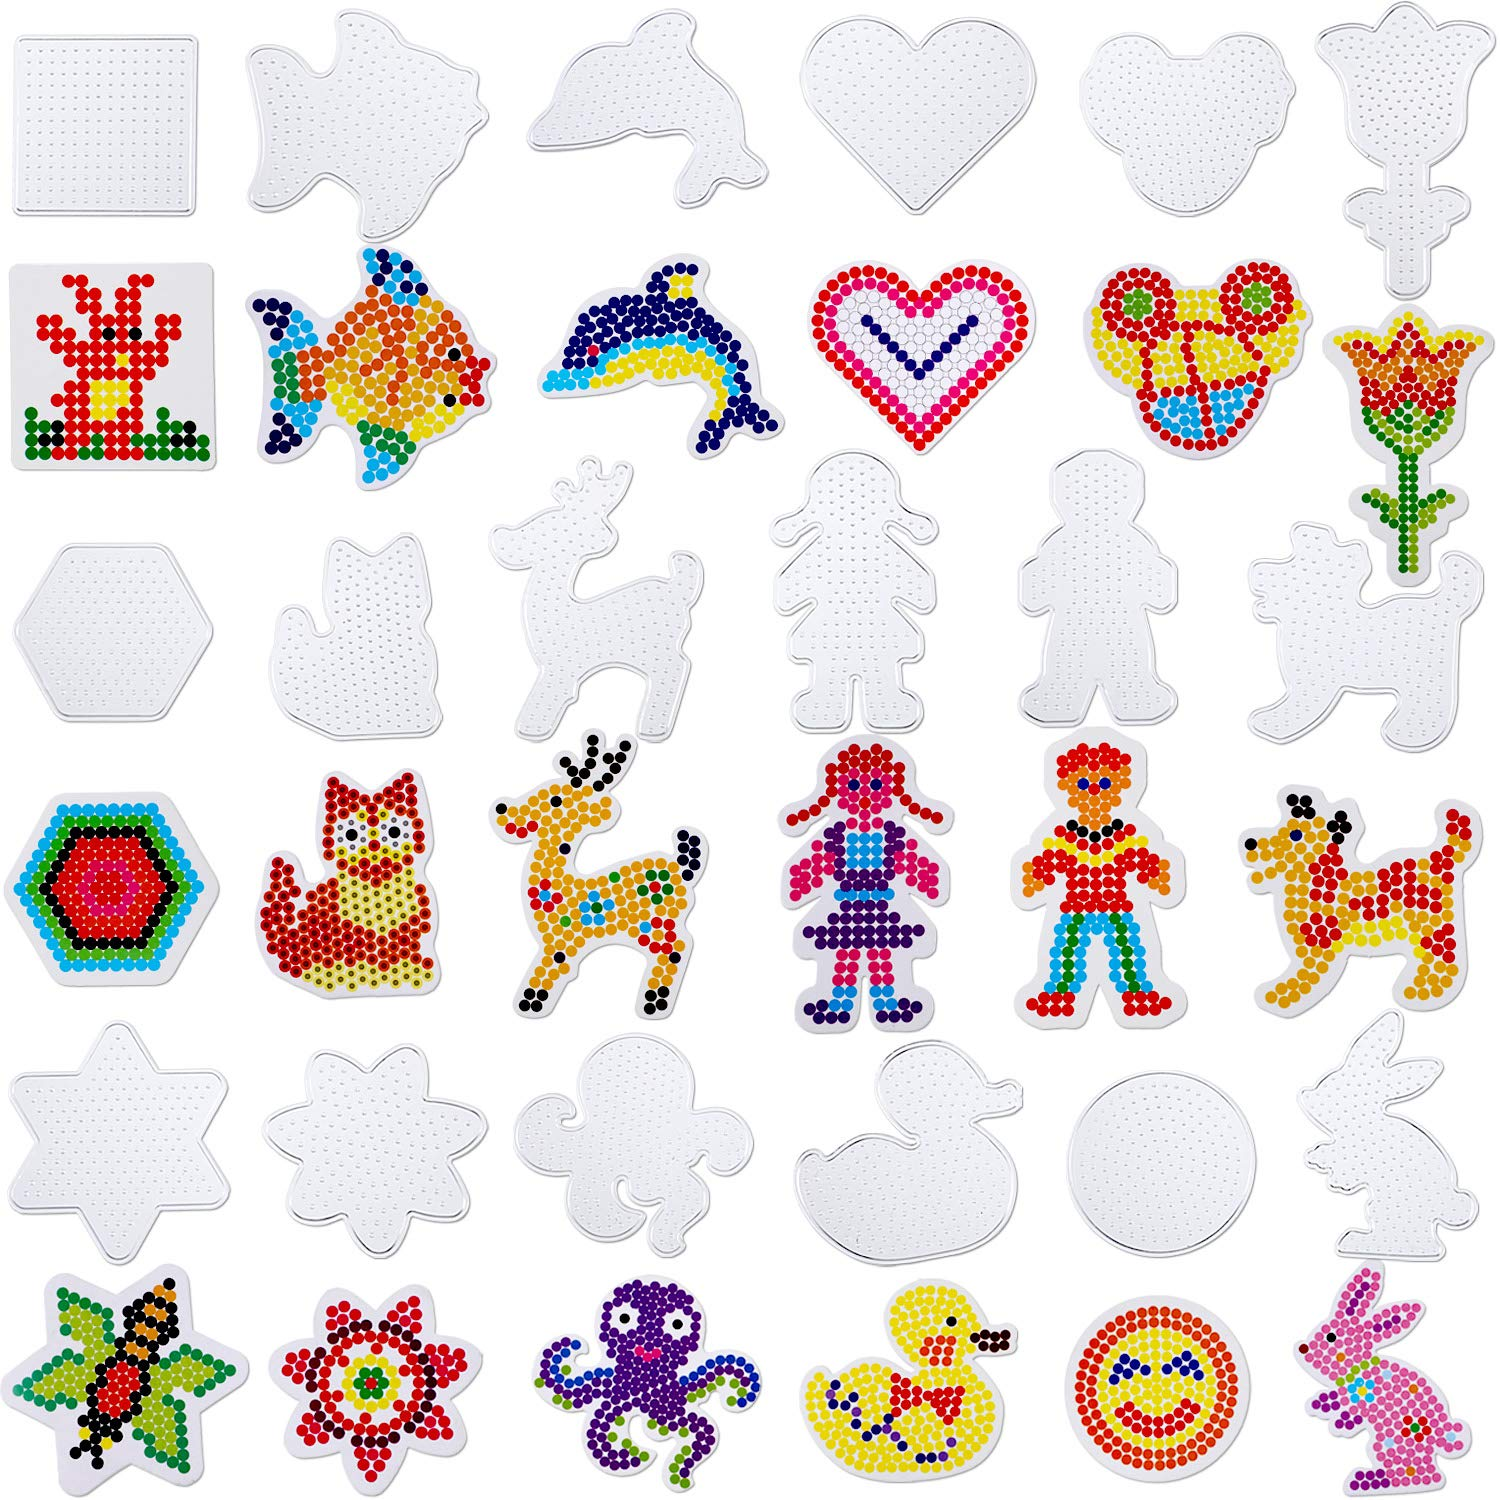 Chuangdi 18 Pieces 5 mm Fuse Beads Boards Clear Plastic Pegboards with 18 Pieces Colorful Cards for Kids Craft Supplies by Chuangdi